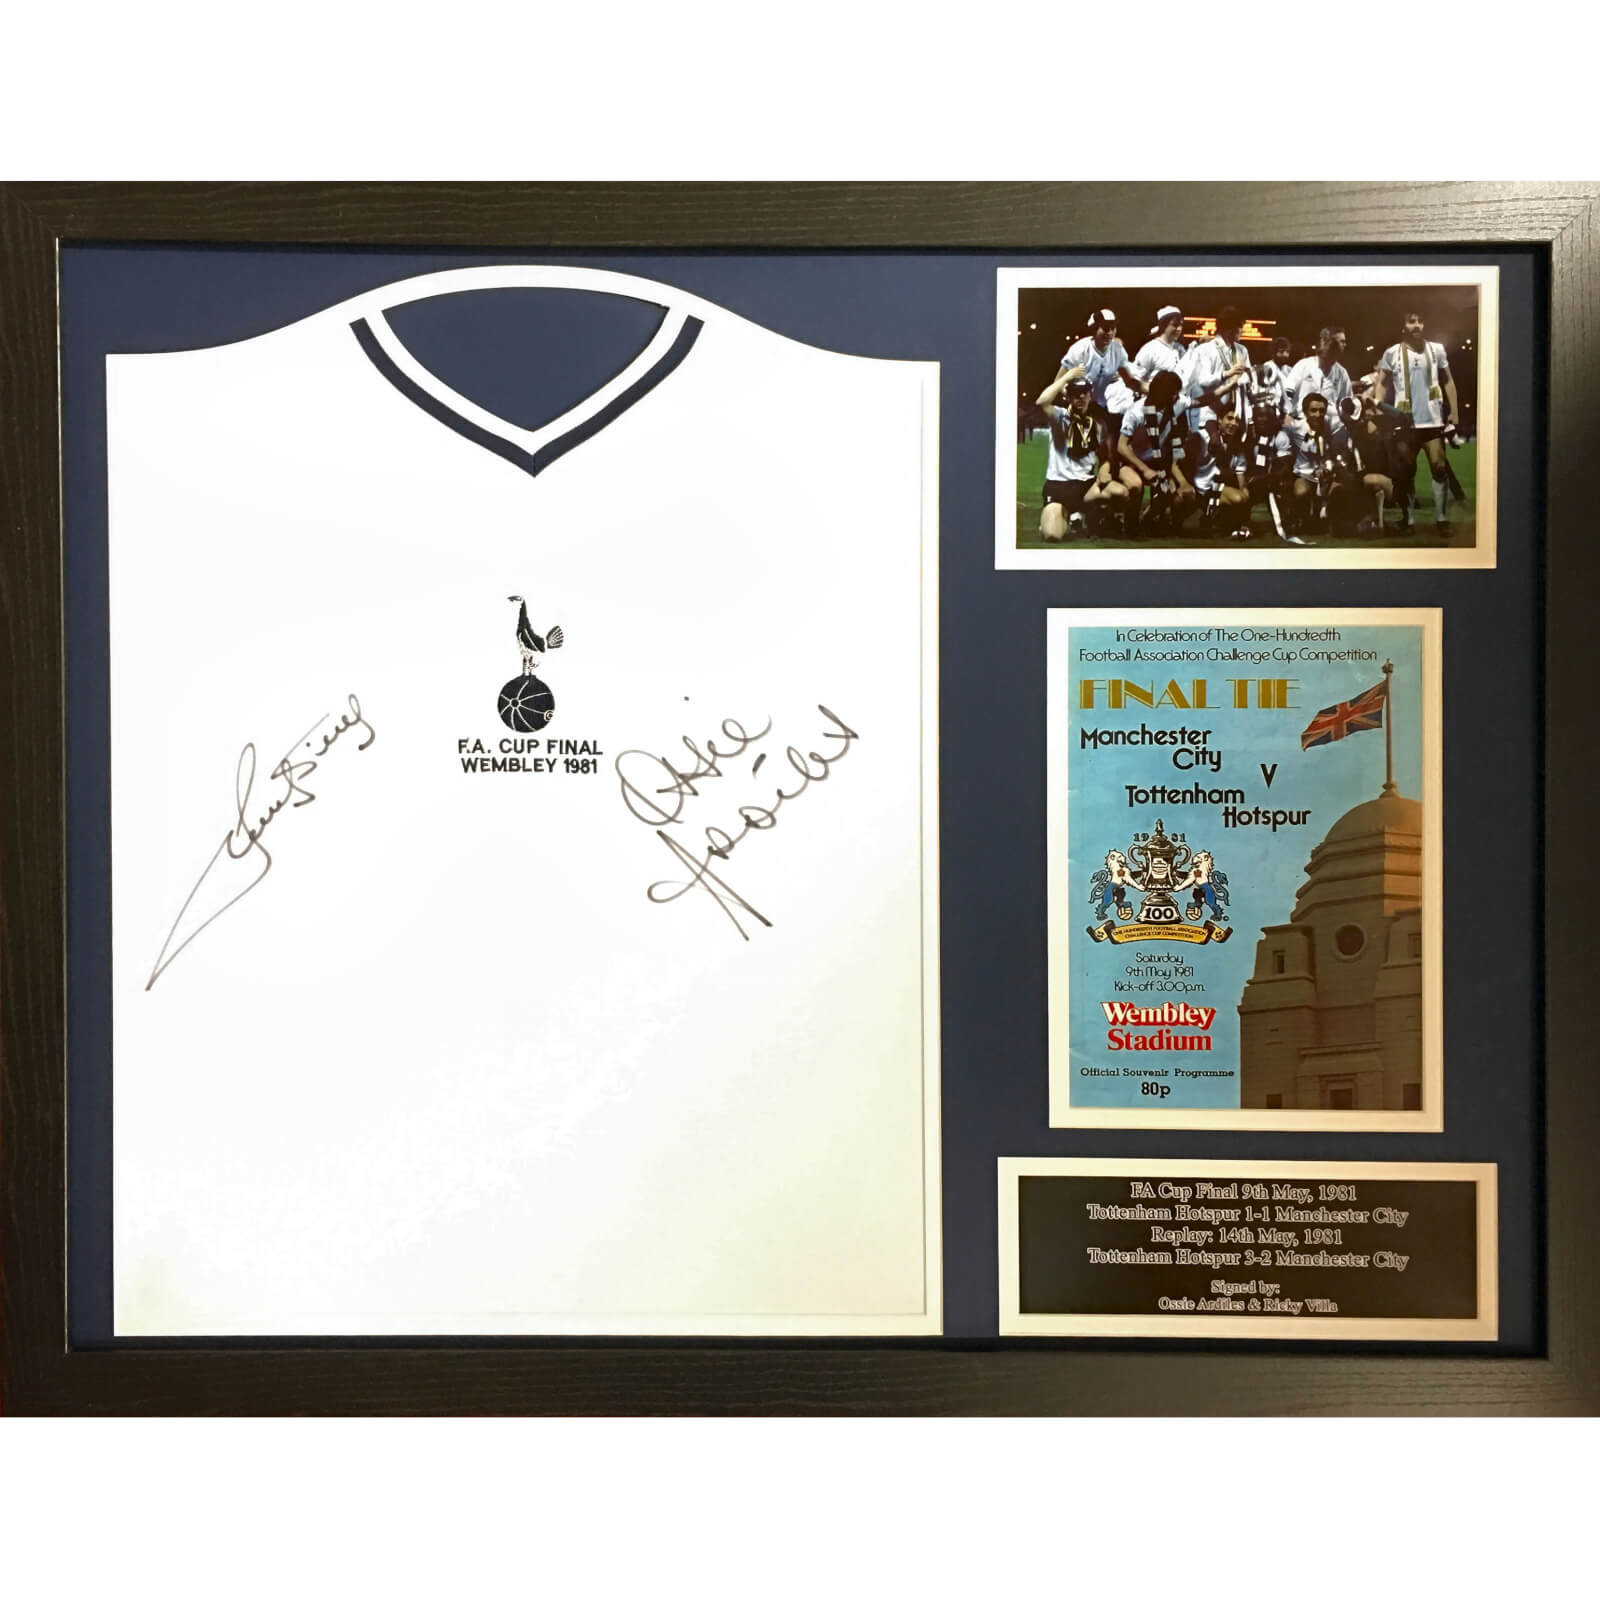 Ossie Ardiles and Ricky Villa Dual Signed and Framed Tottenham Hotspurs 1981